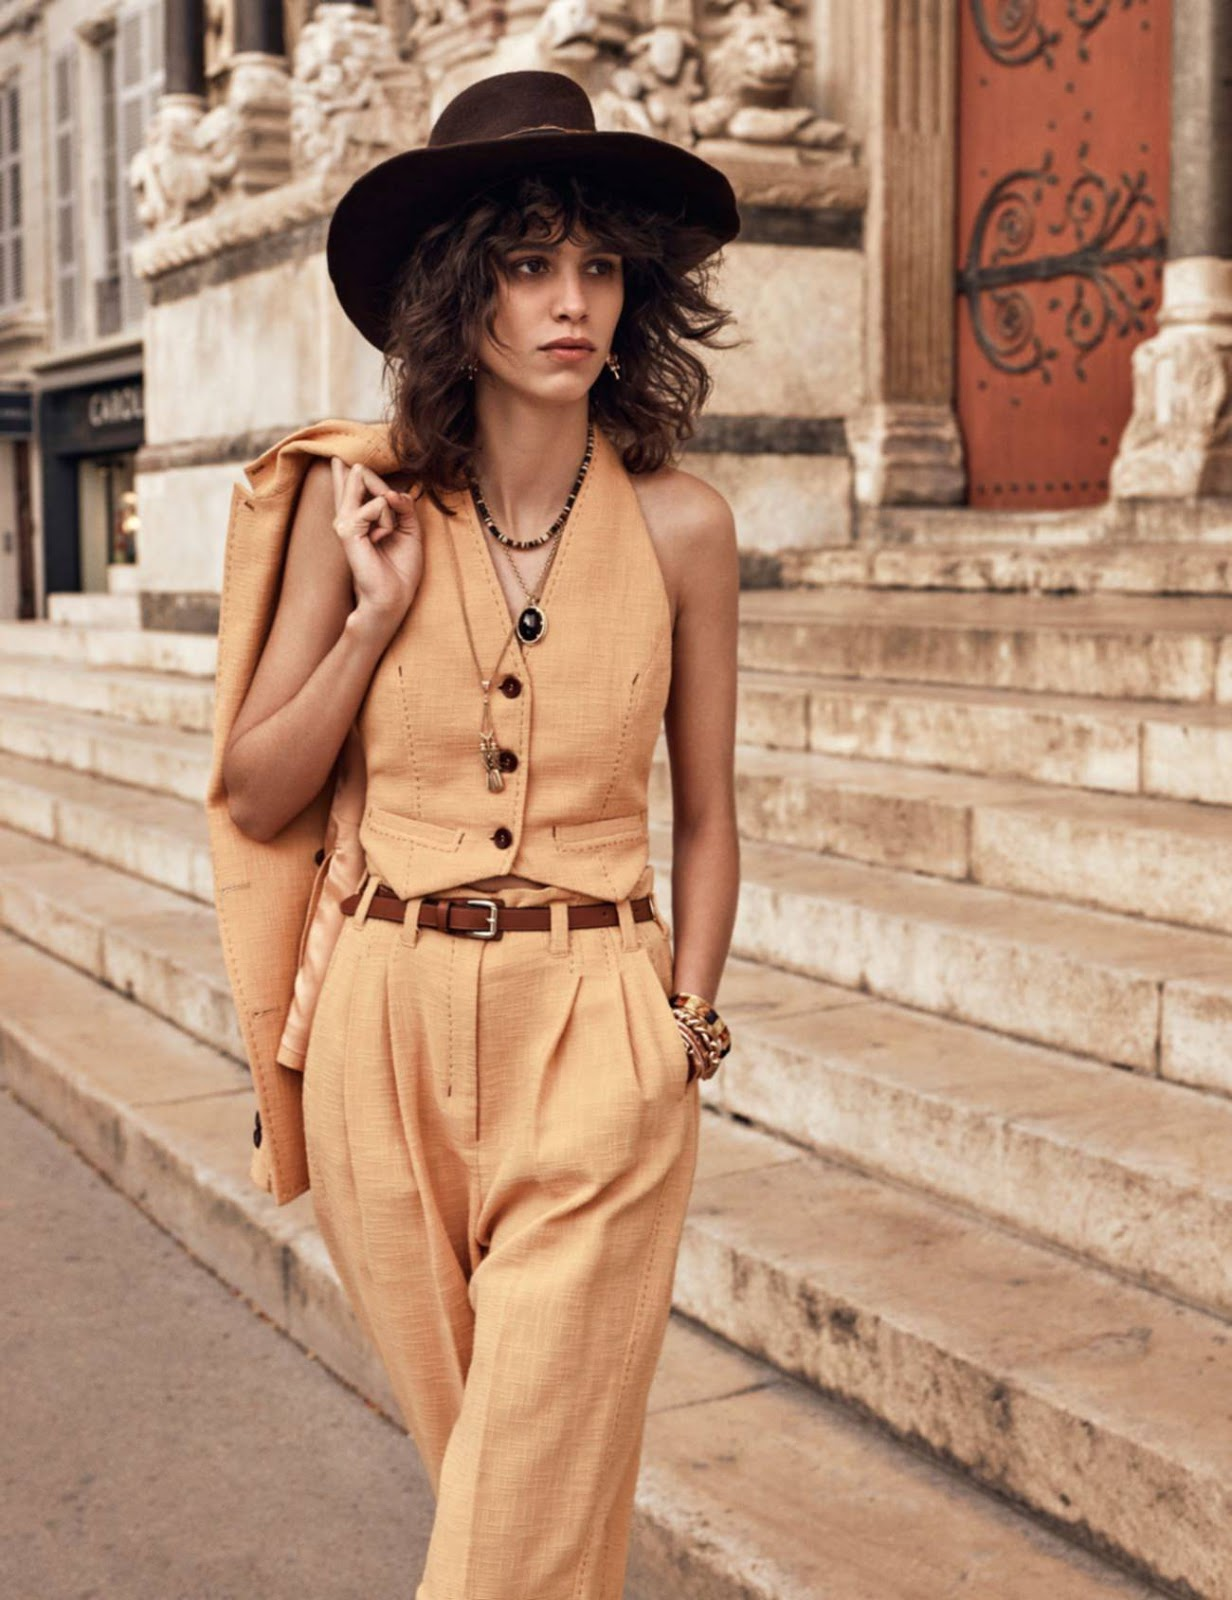 Mica Arganaraz by Mikael Jansson for Vogue Paris June 2016